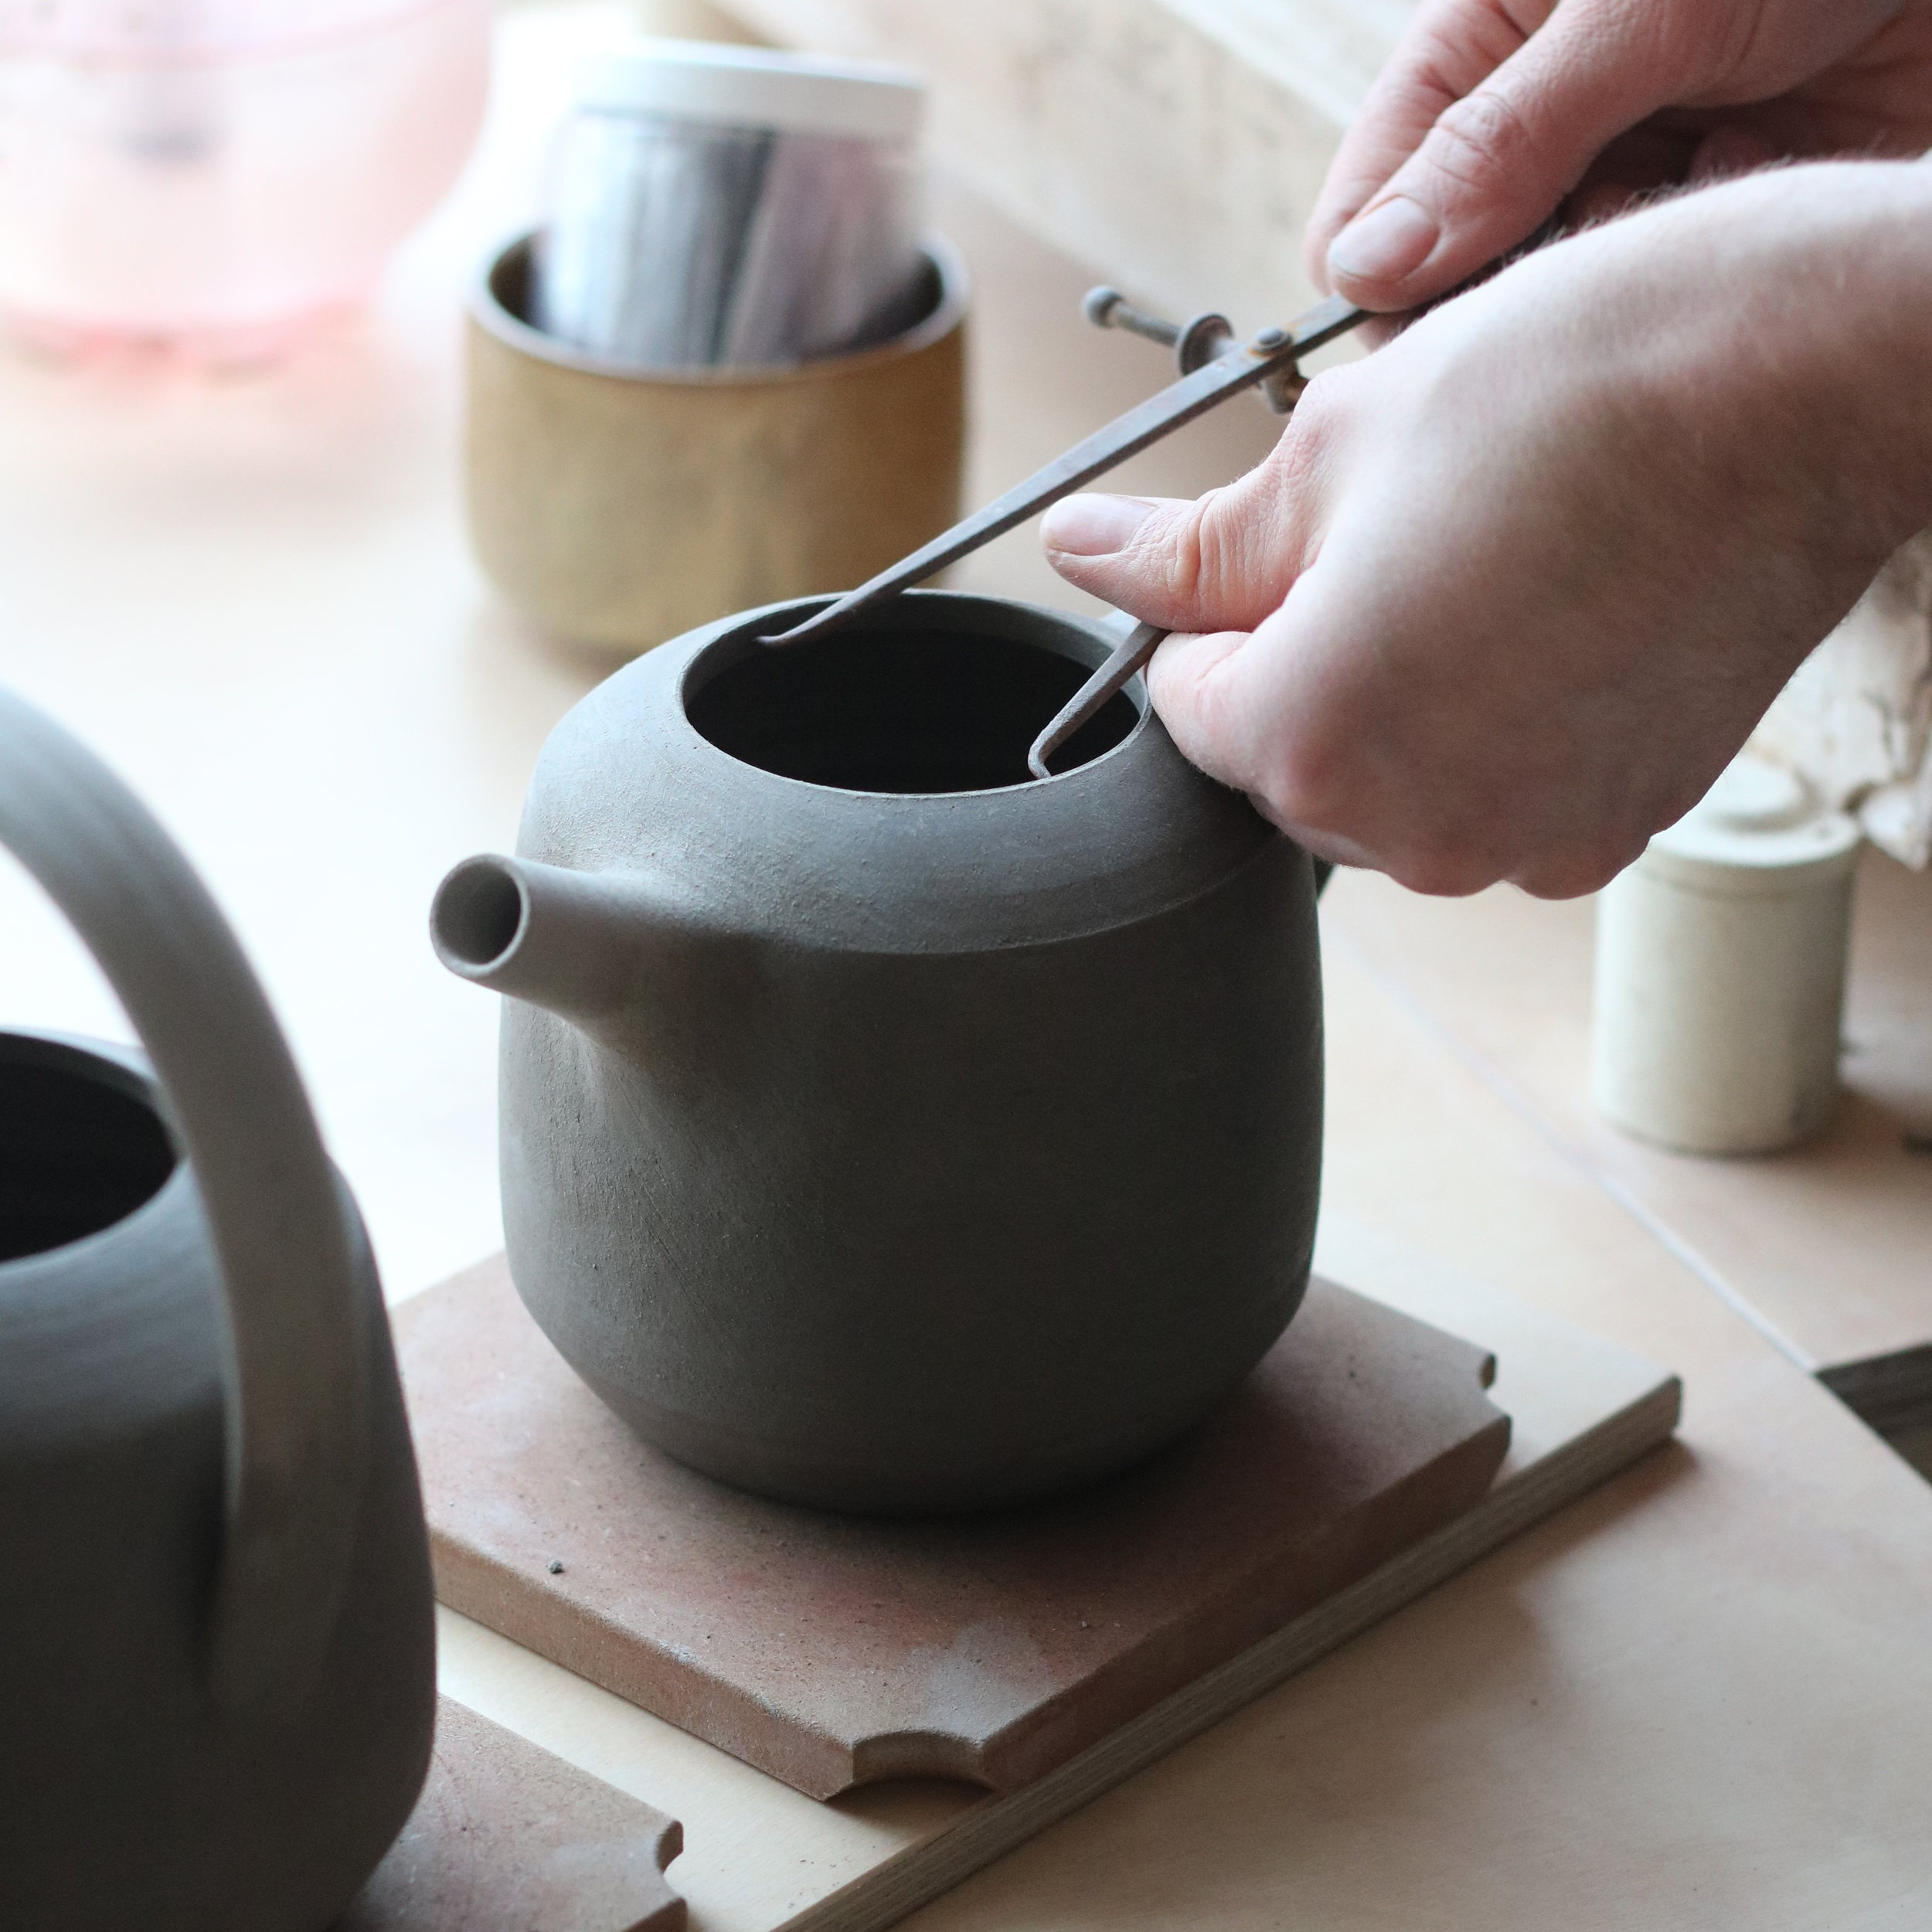 I'm learning about teapots at the moment. Can you talk about your lids and specifically fit? Do you have a locking mechanism, what type of gallery works best etc.? - We don't have a locking mechanism for our lids and we use an open gallery with a flanged lid that sits on top and outside. We do ours in batches so all the lids and holes are the correct size (as opposed to one lid per one teapot).